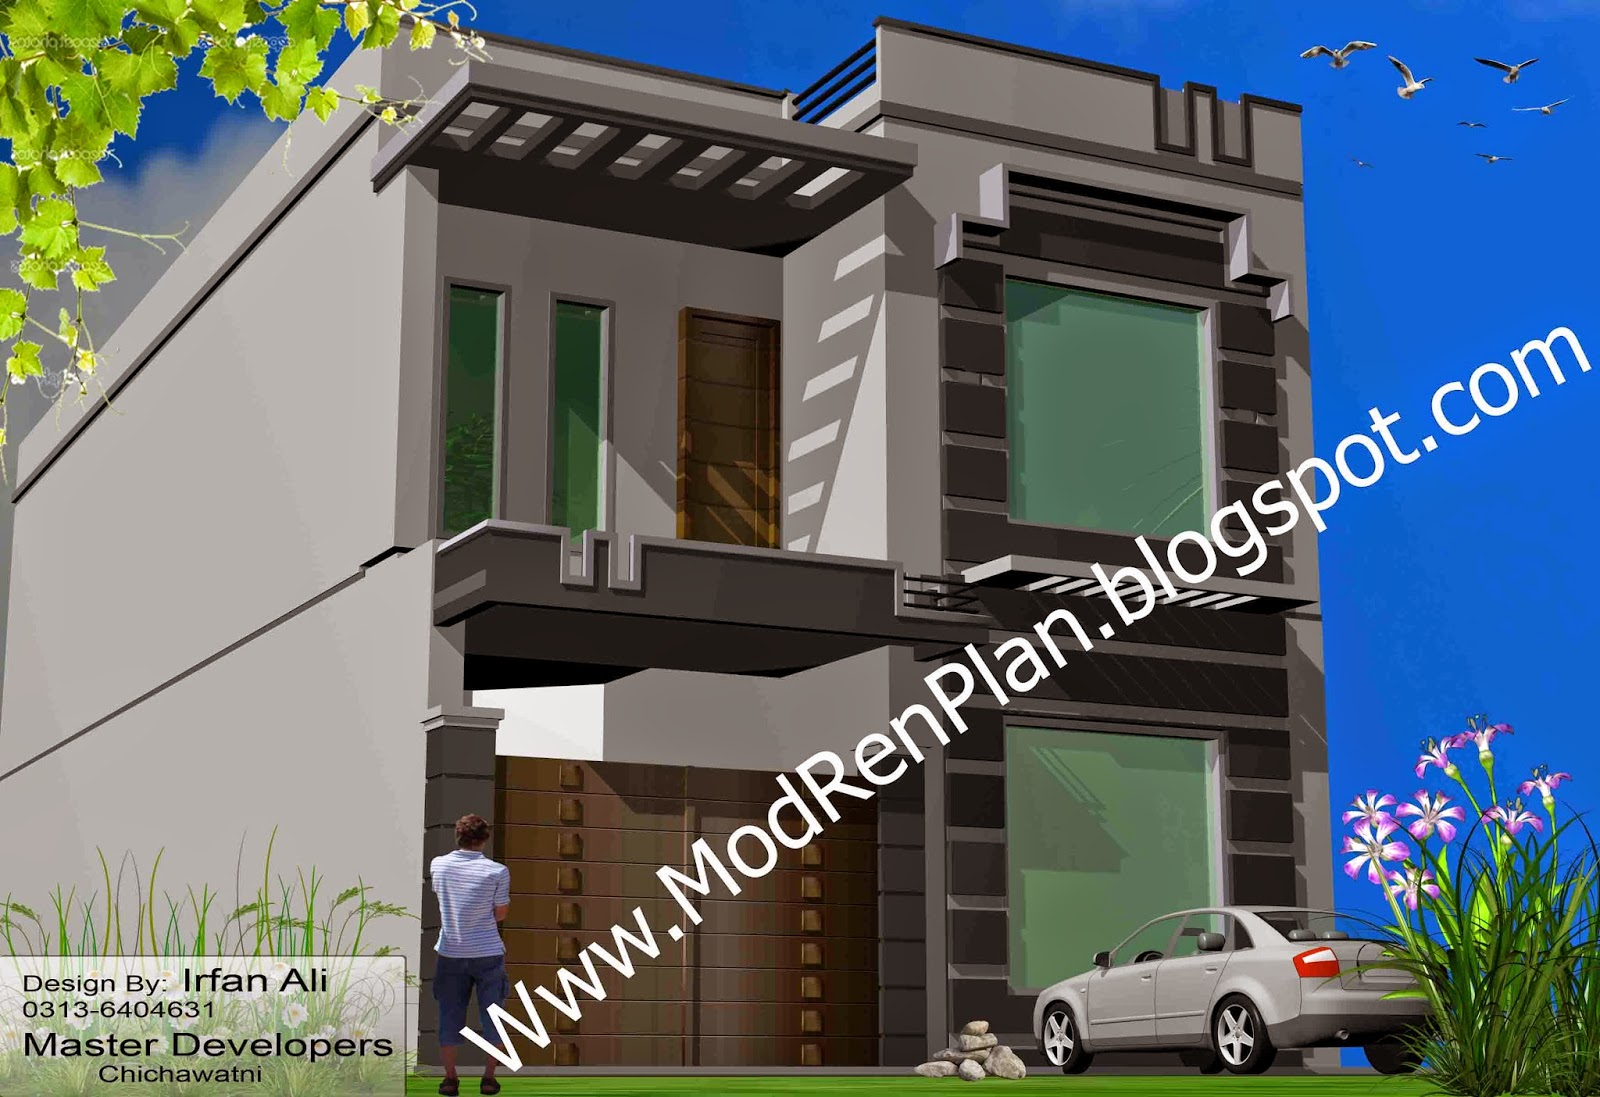 marla Front Elevation-house design-indian style house-arabic-villa